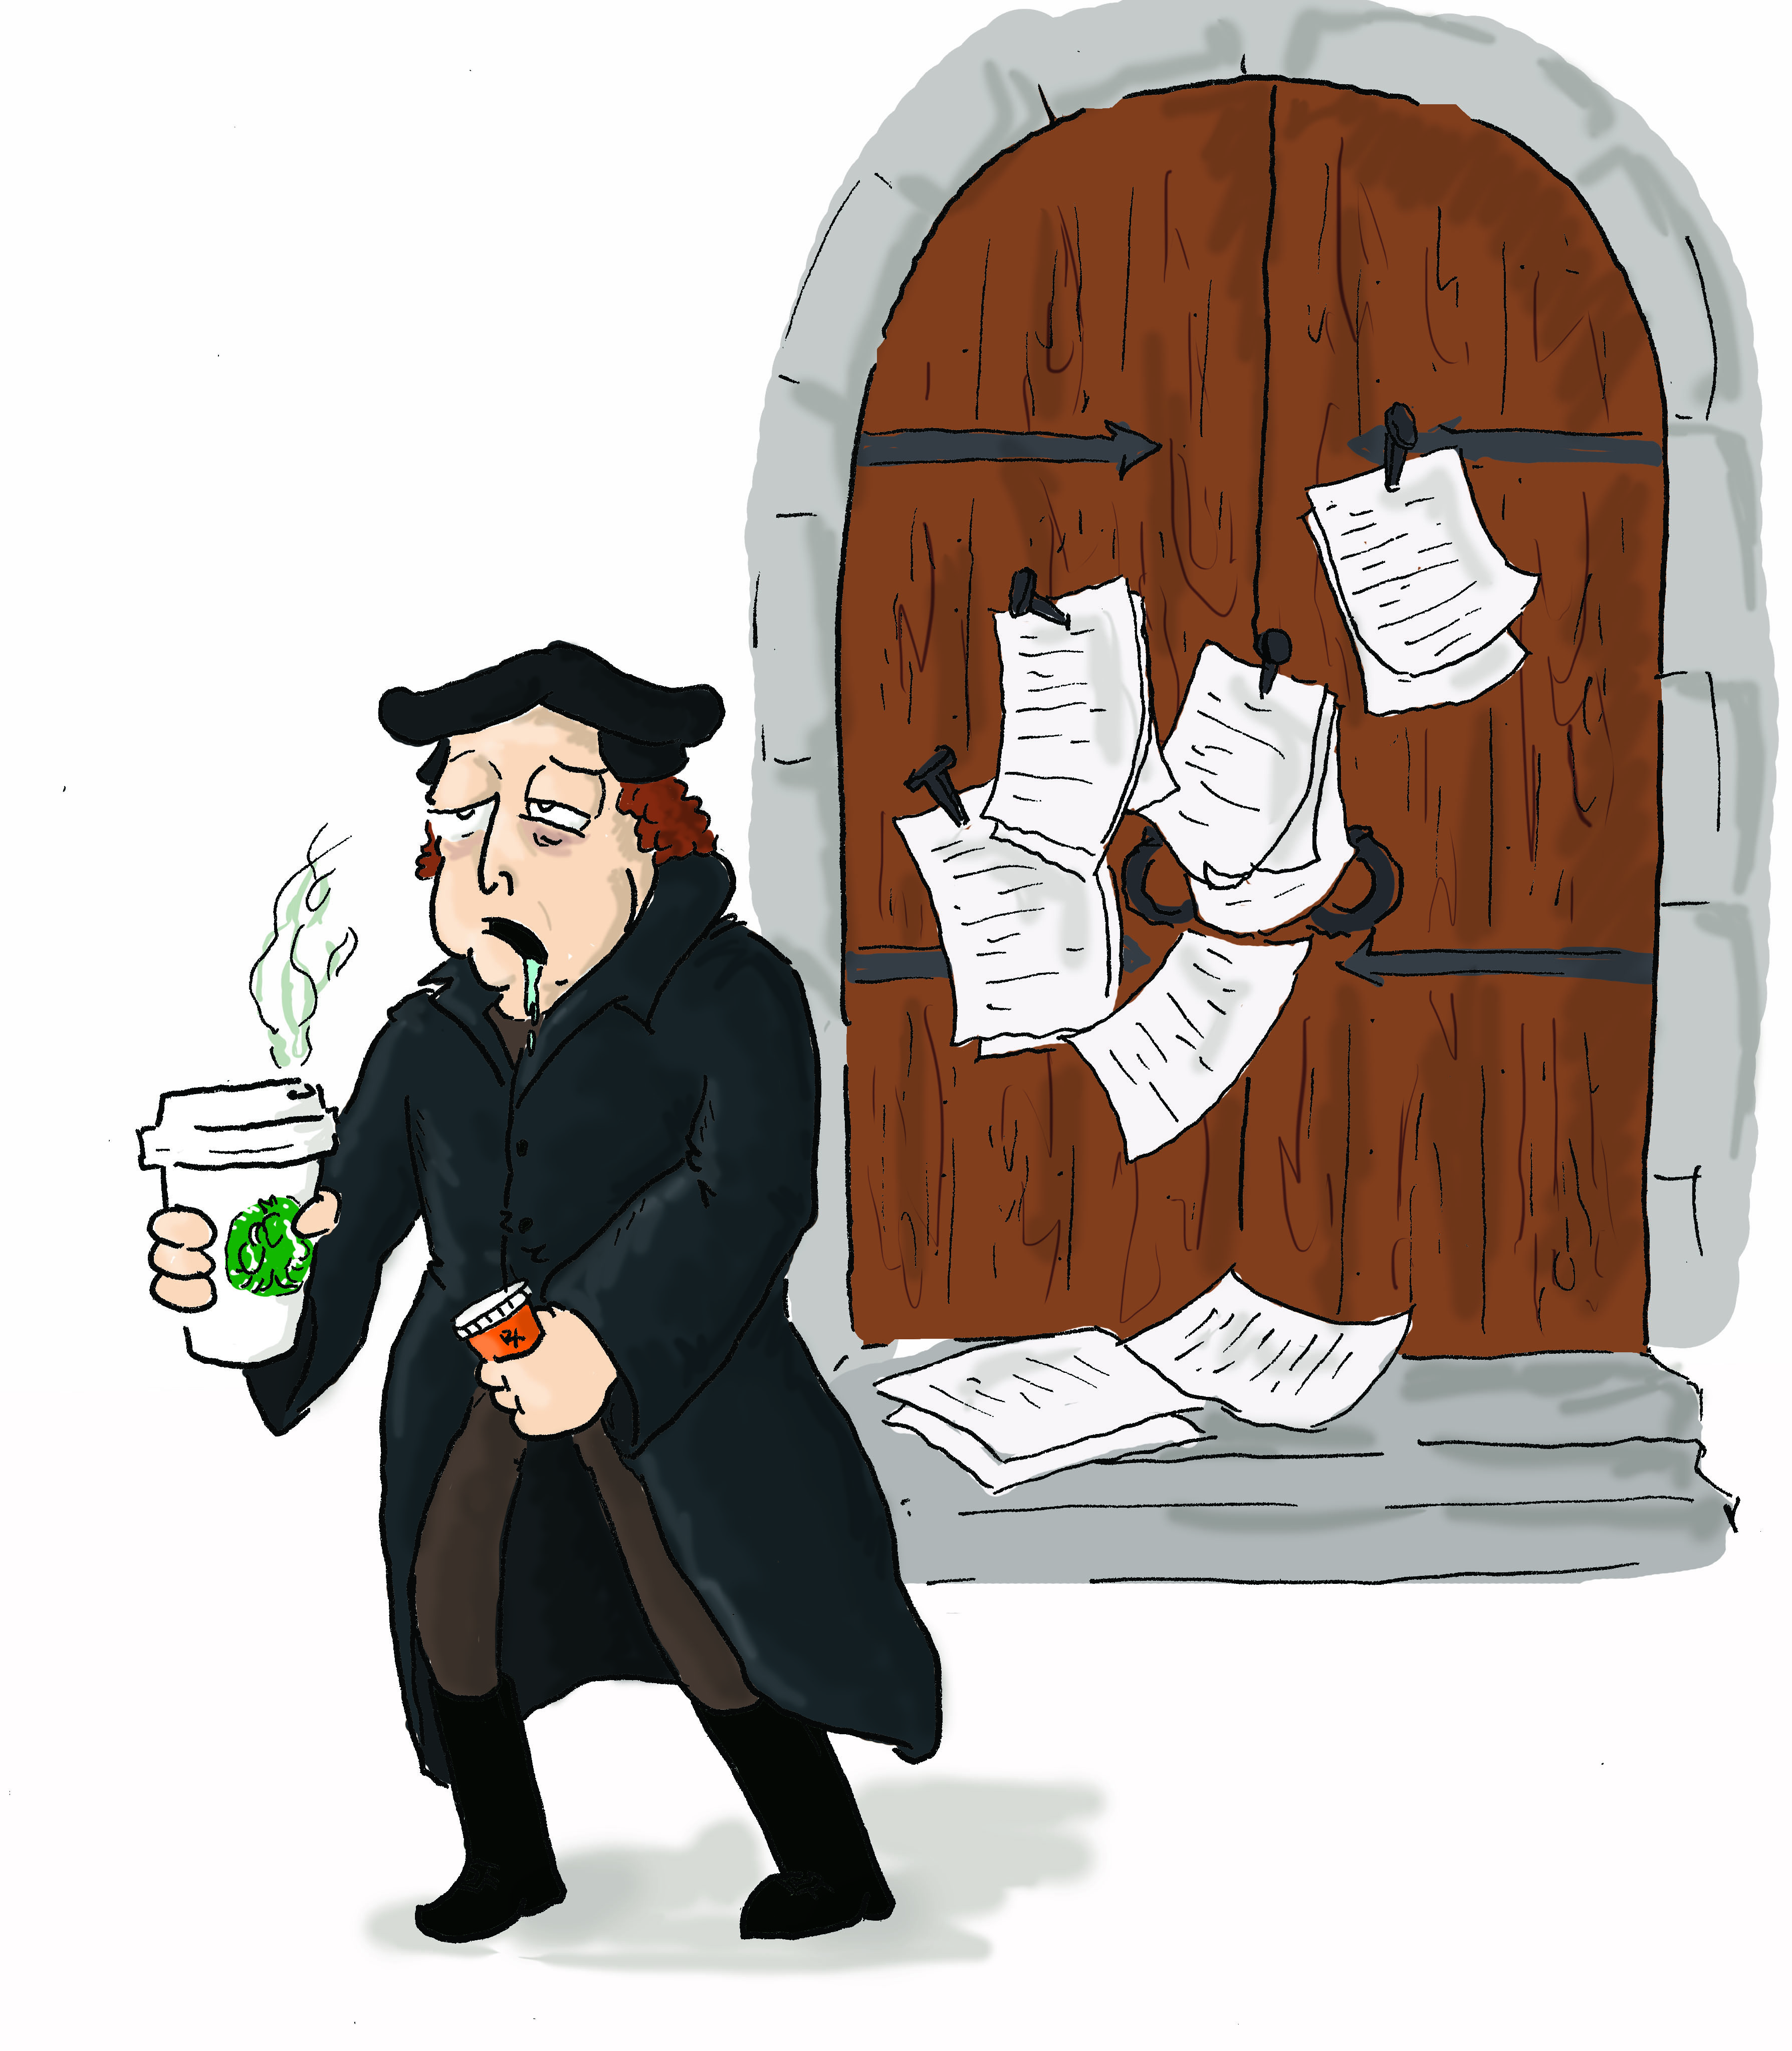 what happened to martin luther as a result of the 95 theses